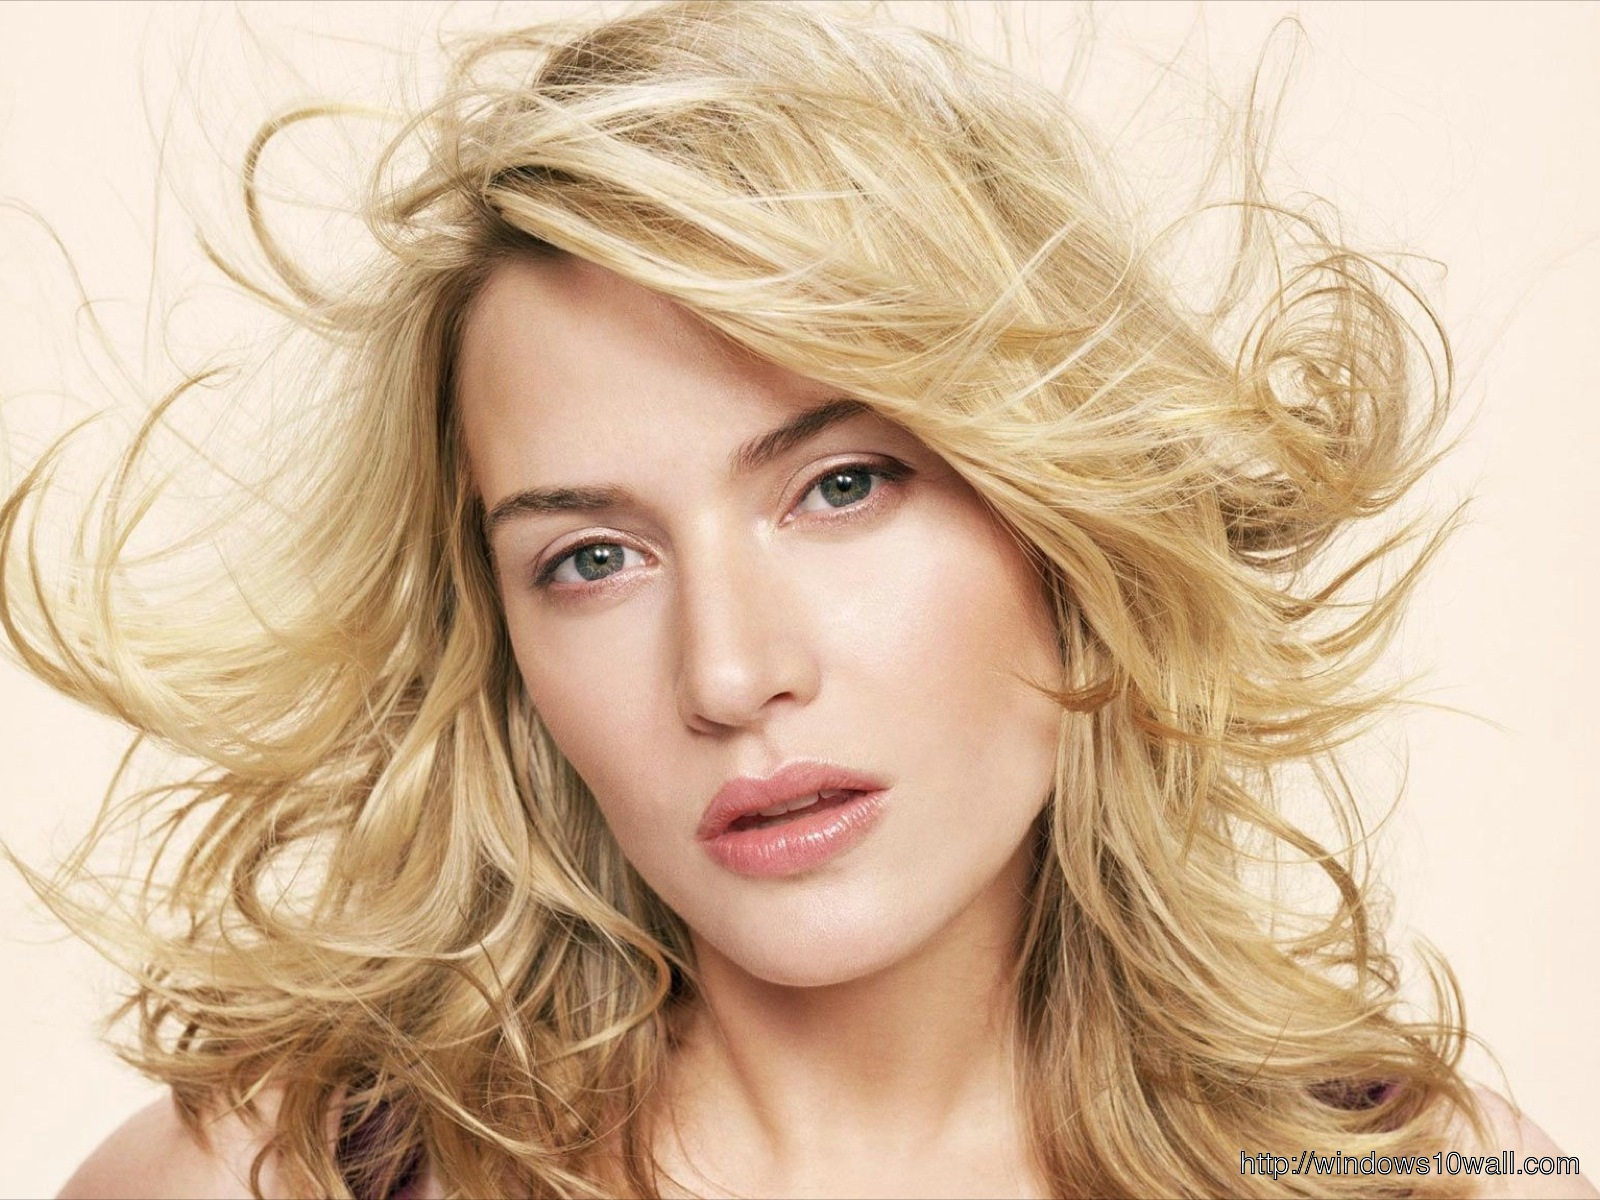 Kate Winslet Latest HD Hollywood Actress Pink Black Dress HD Wallpaper